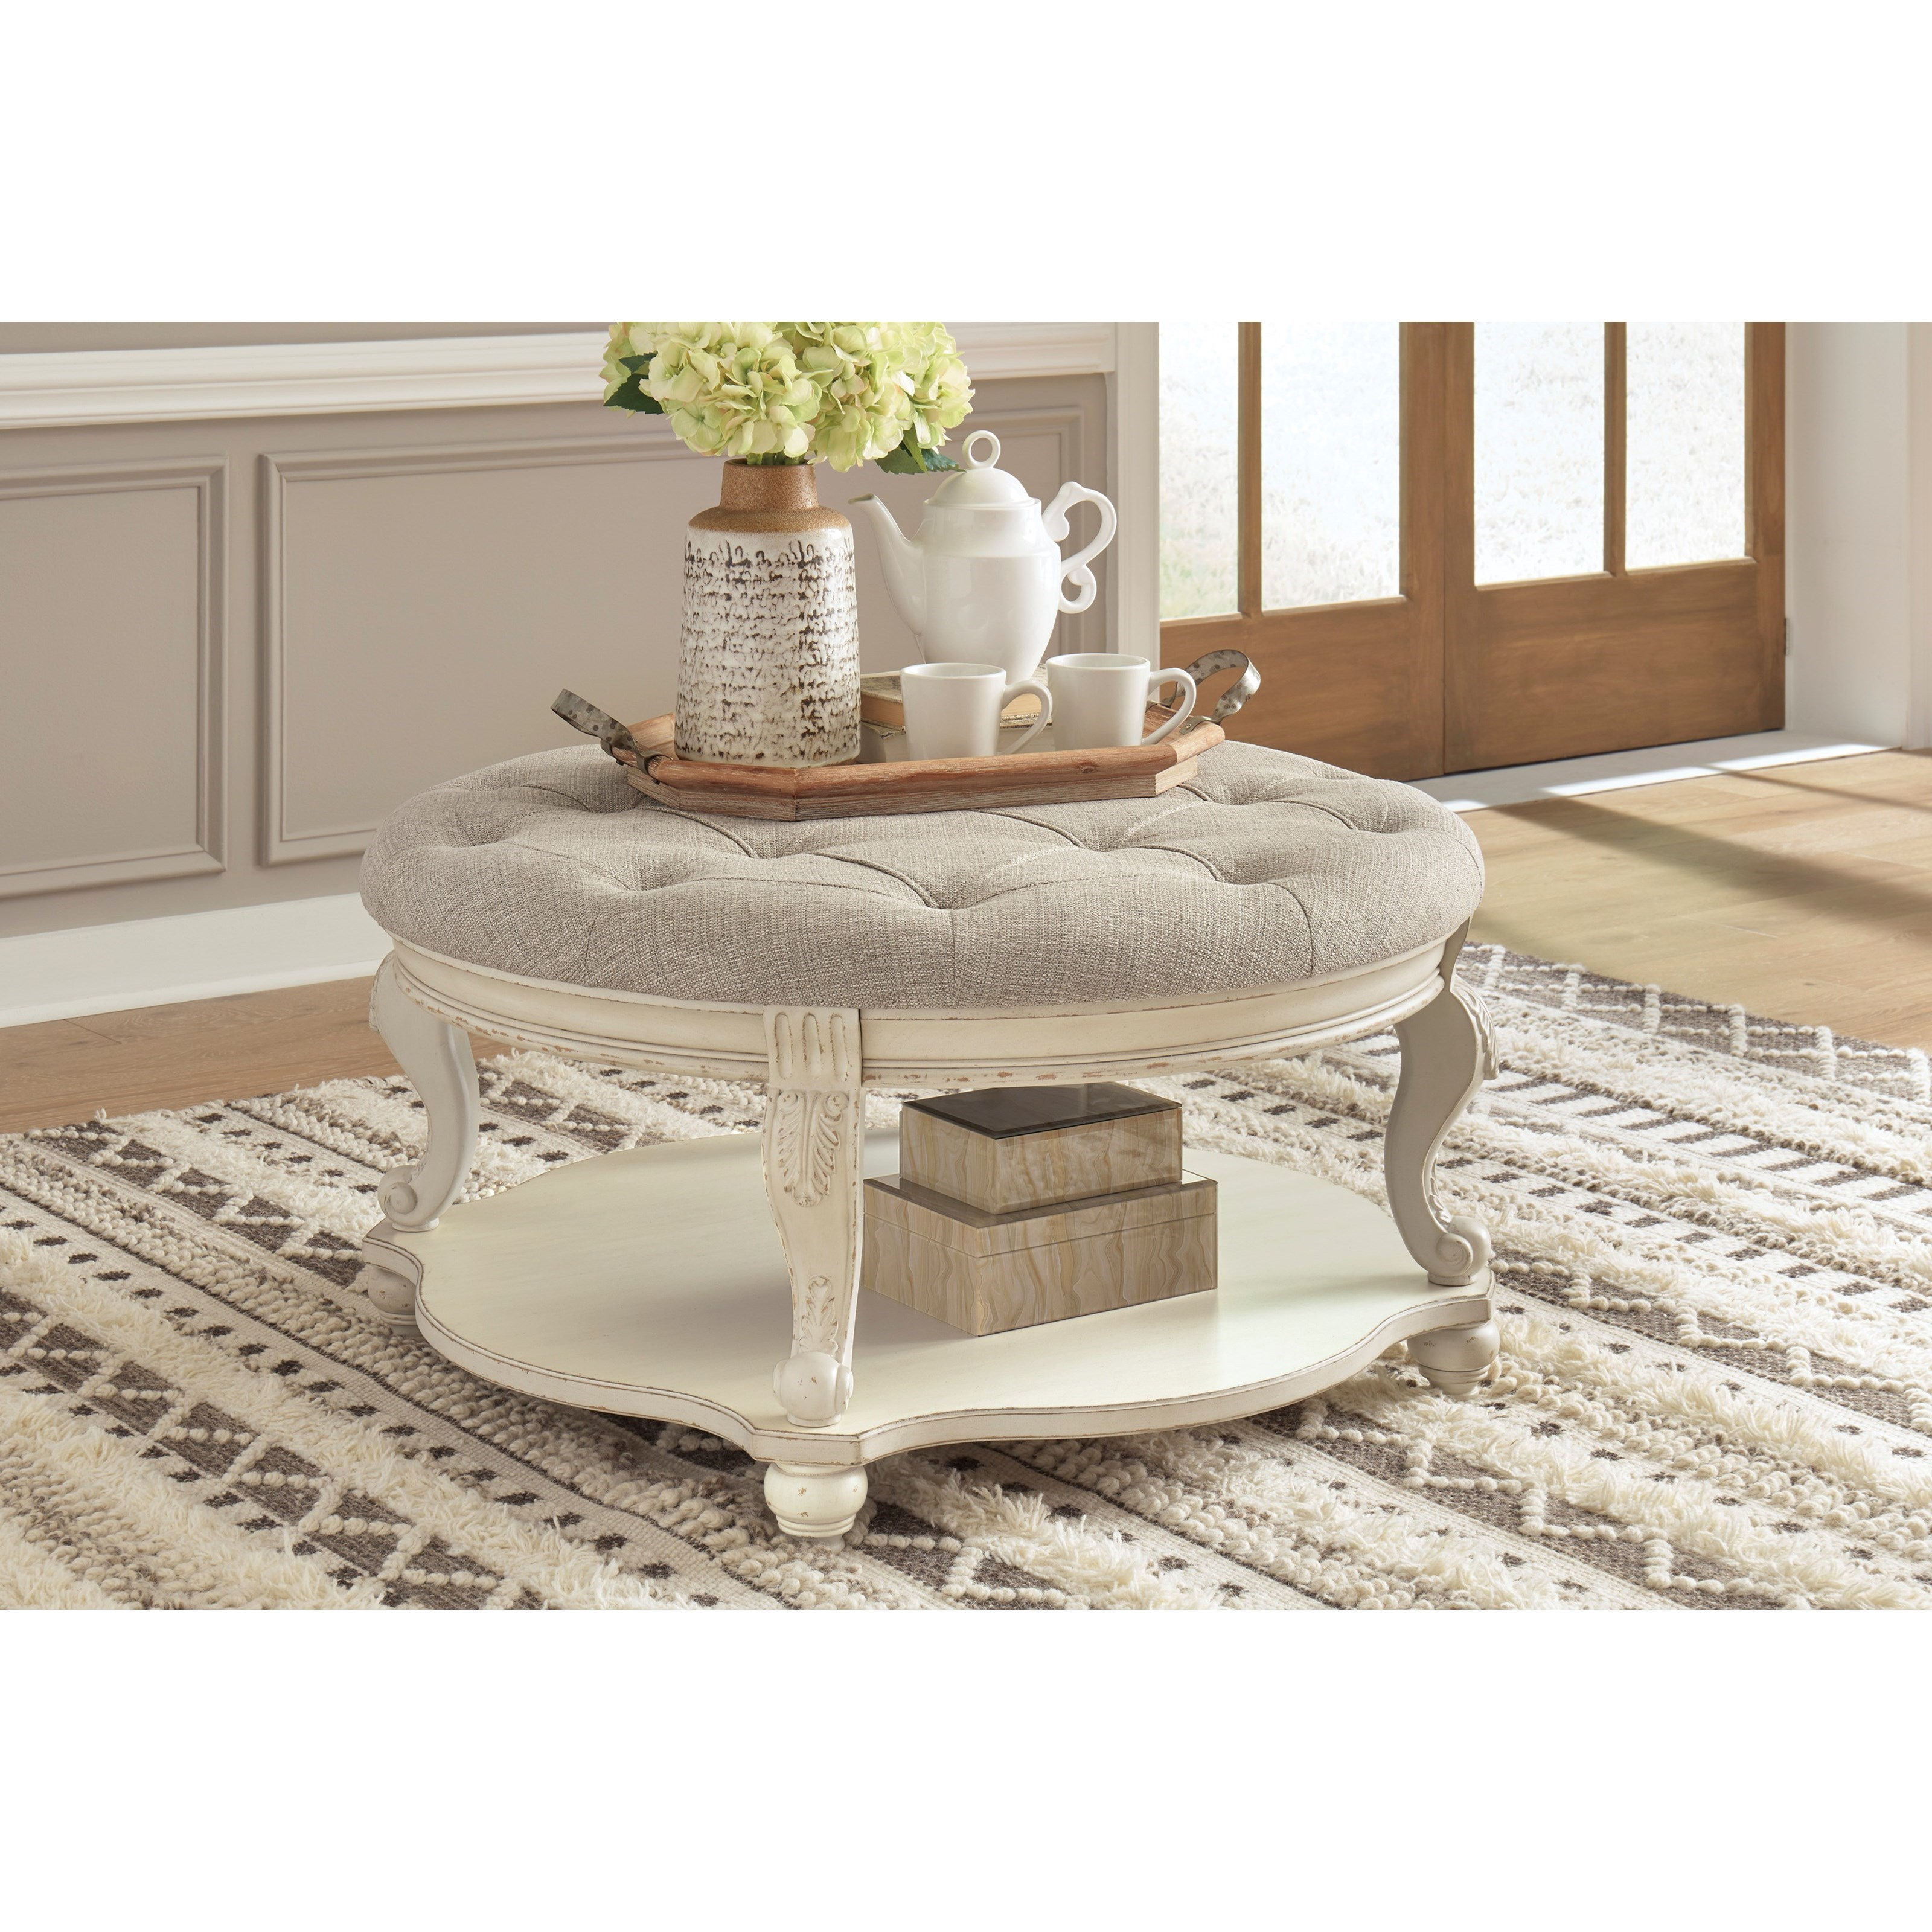 realyn ottoman cocktail table